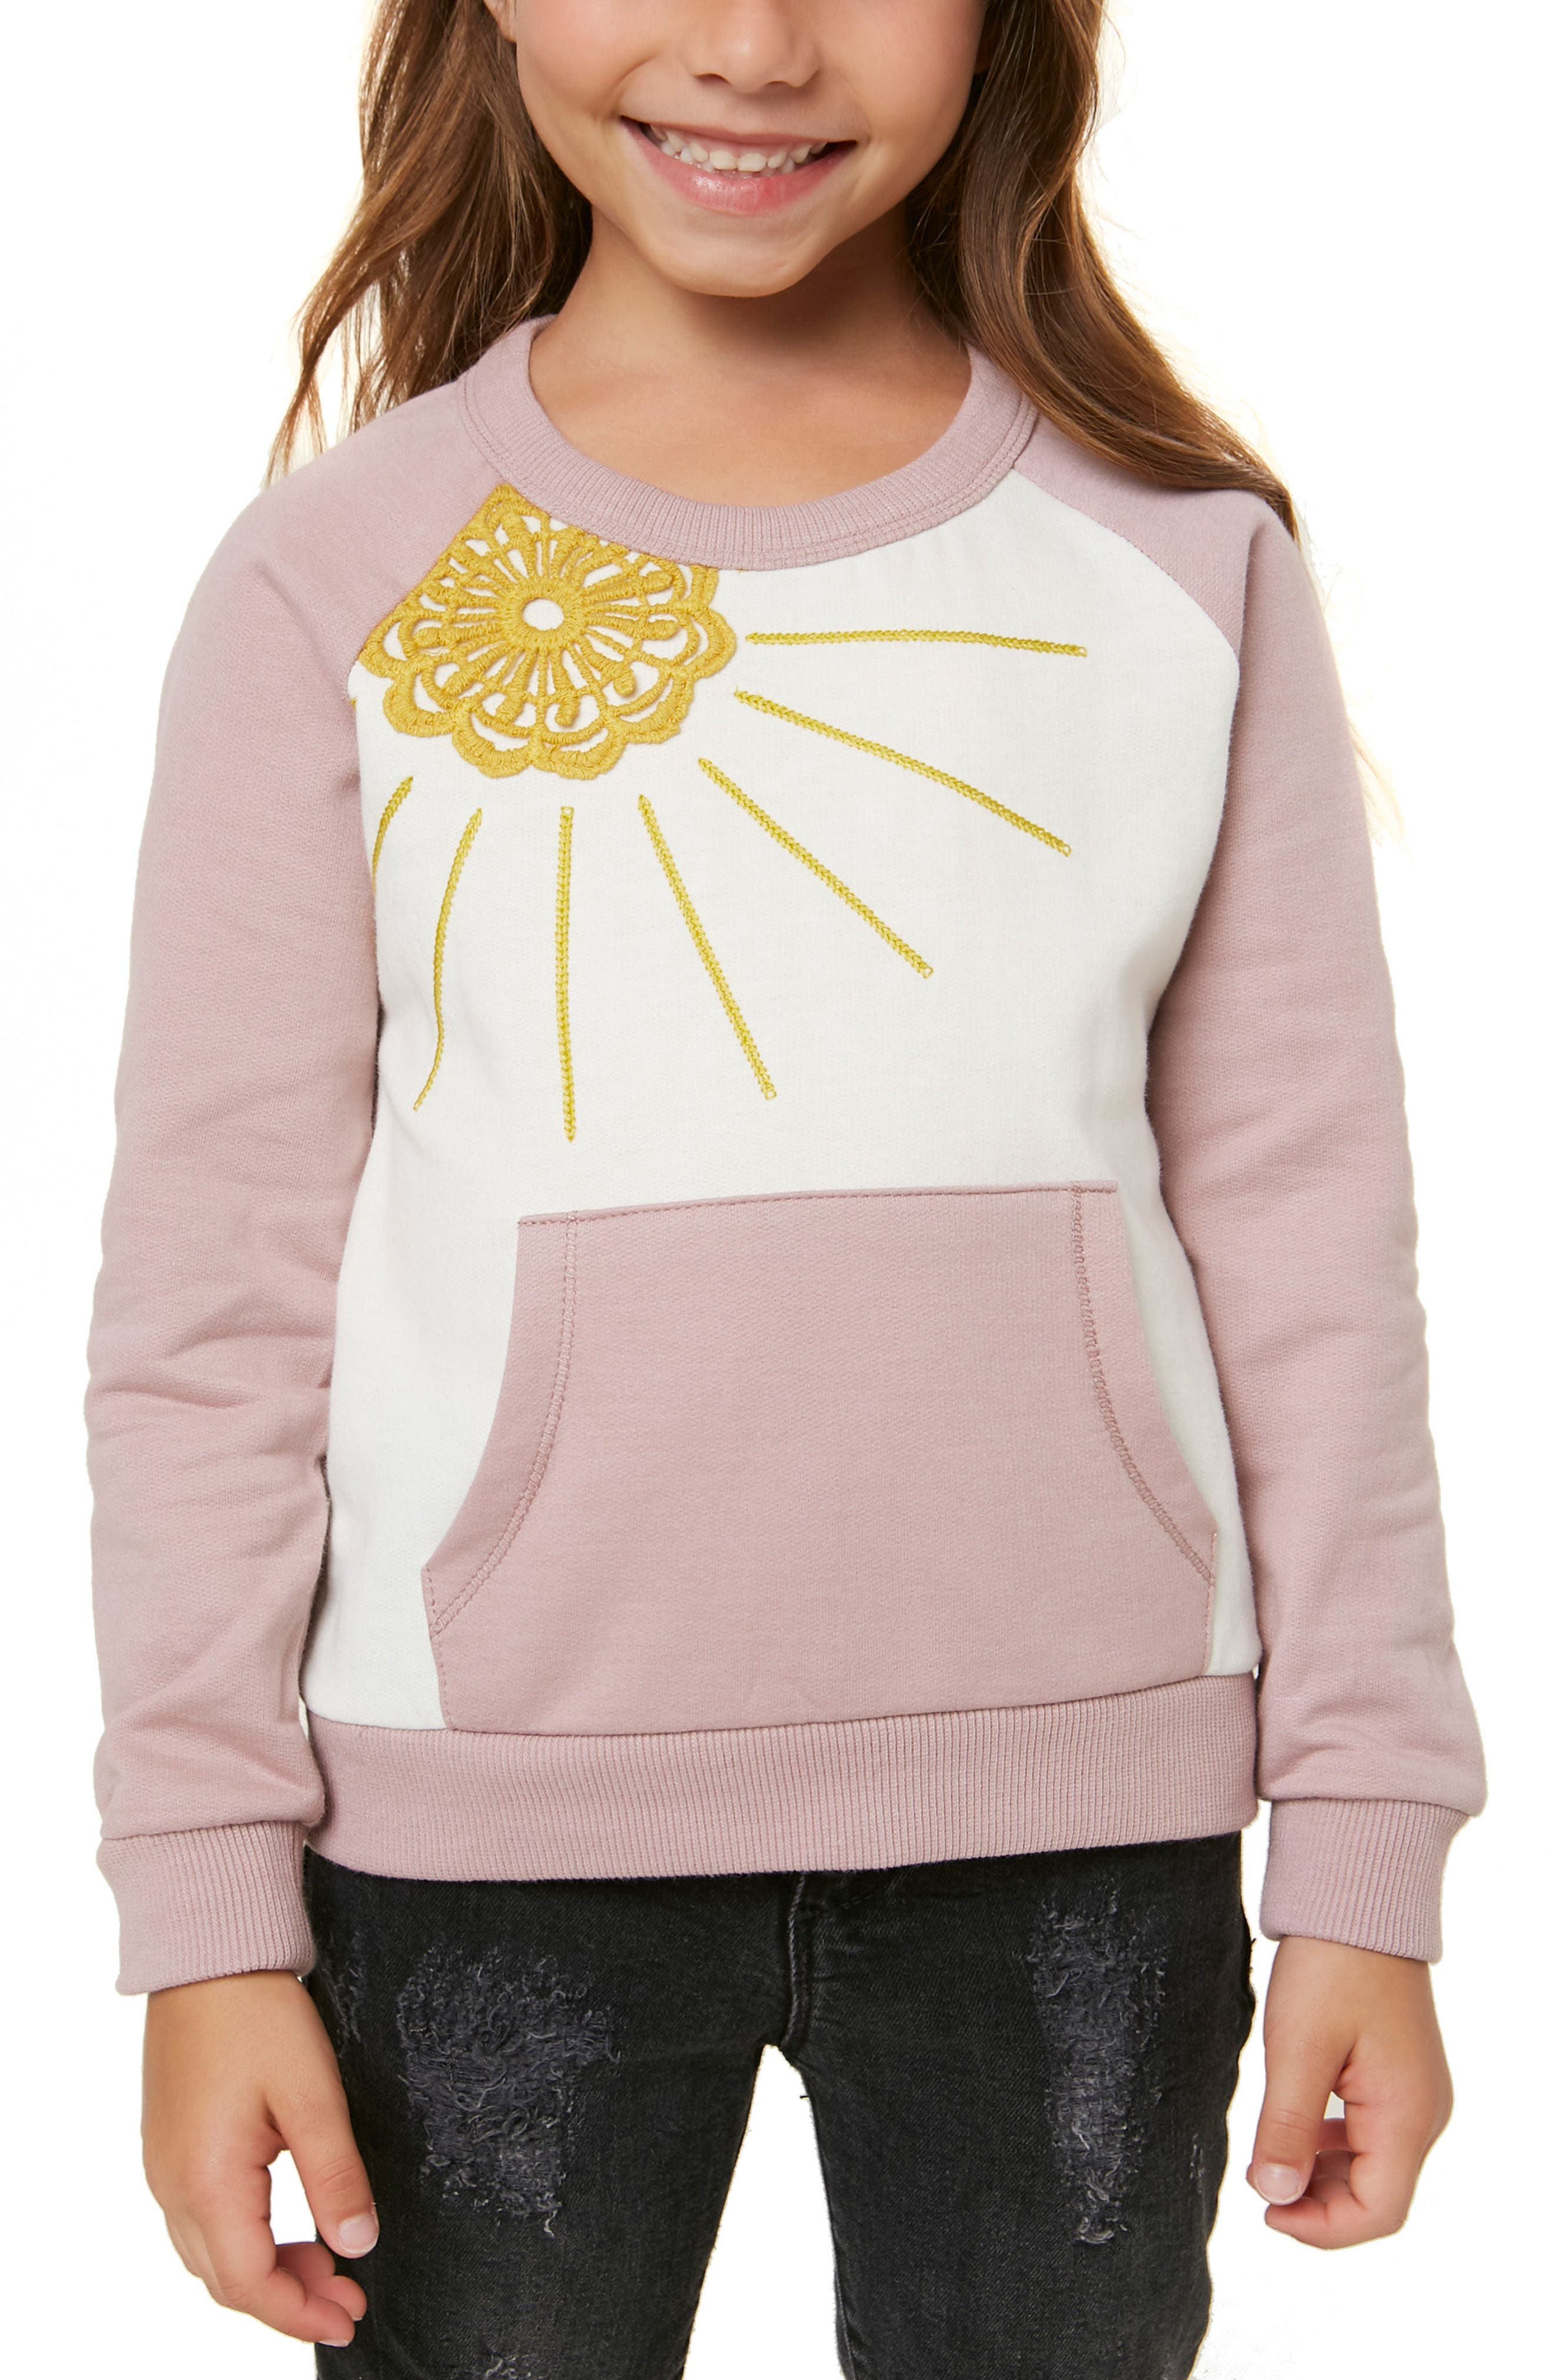 Sol Embroidered Sweatshirt,                         Main,                         color, DEAUVILLE MAUVE